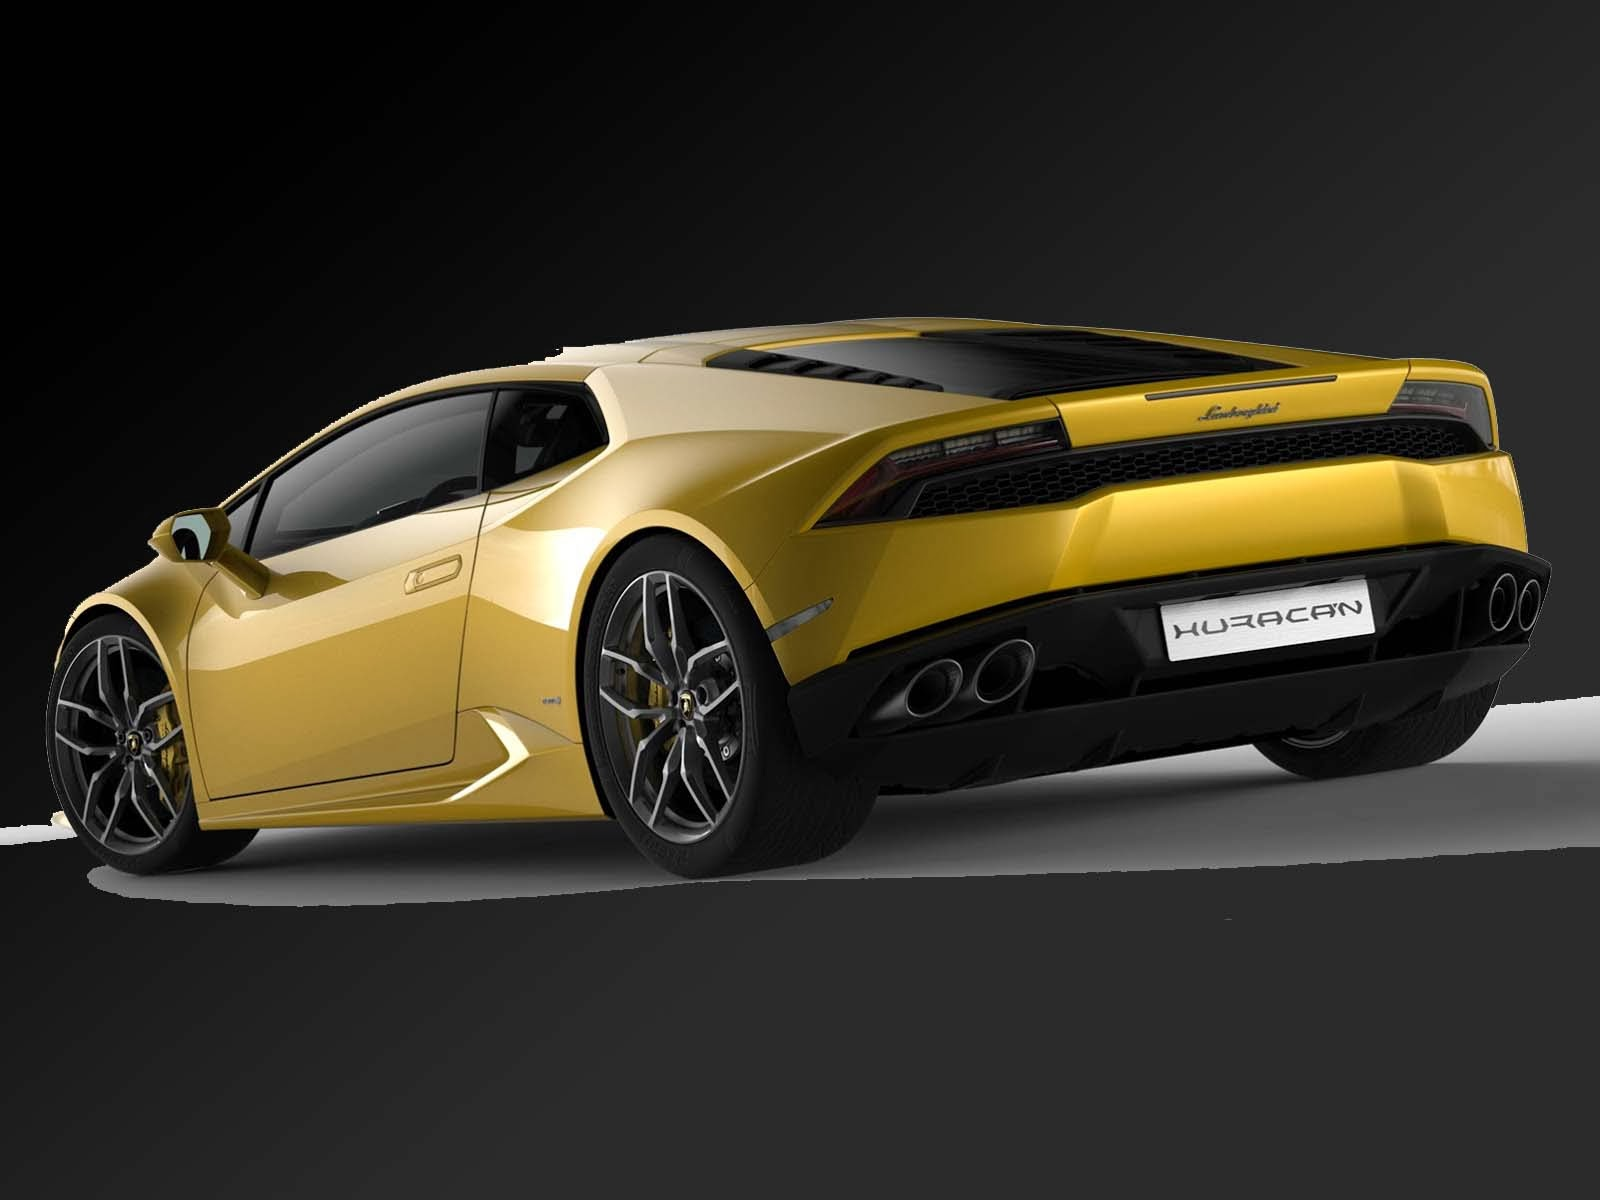 lamborghini huracan lp610 4 hd wallpapers stills images. Black Bedroom Furniture Sets. Home Design Ideas